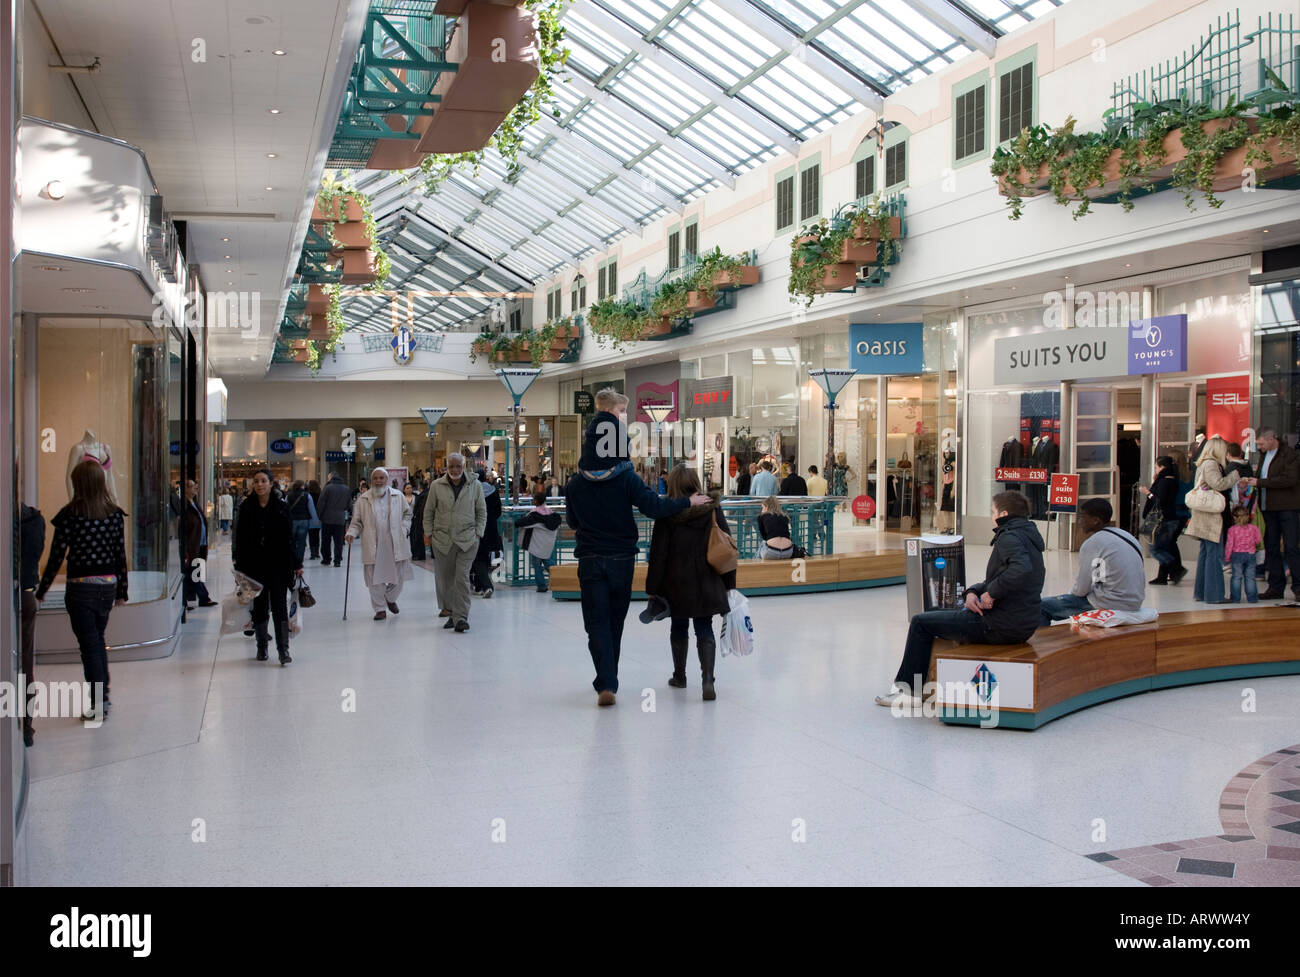 Intu Shopping Centre (formally Harlequin) - Watford - Herts - Stock Image